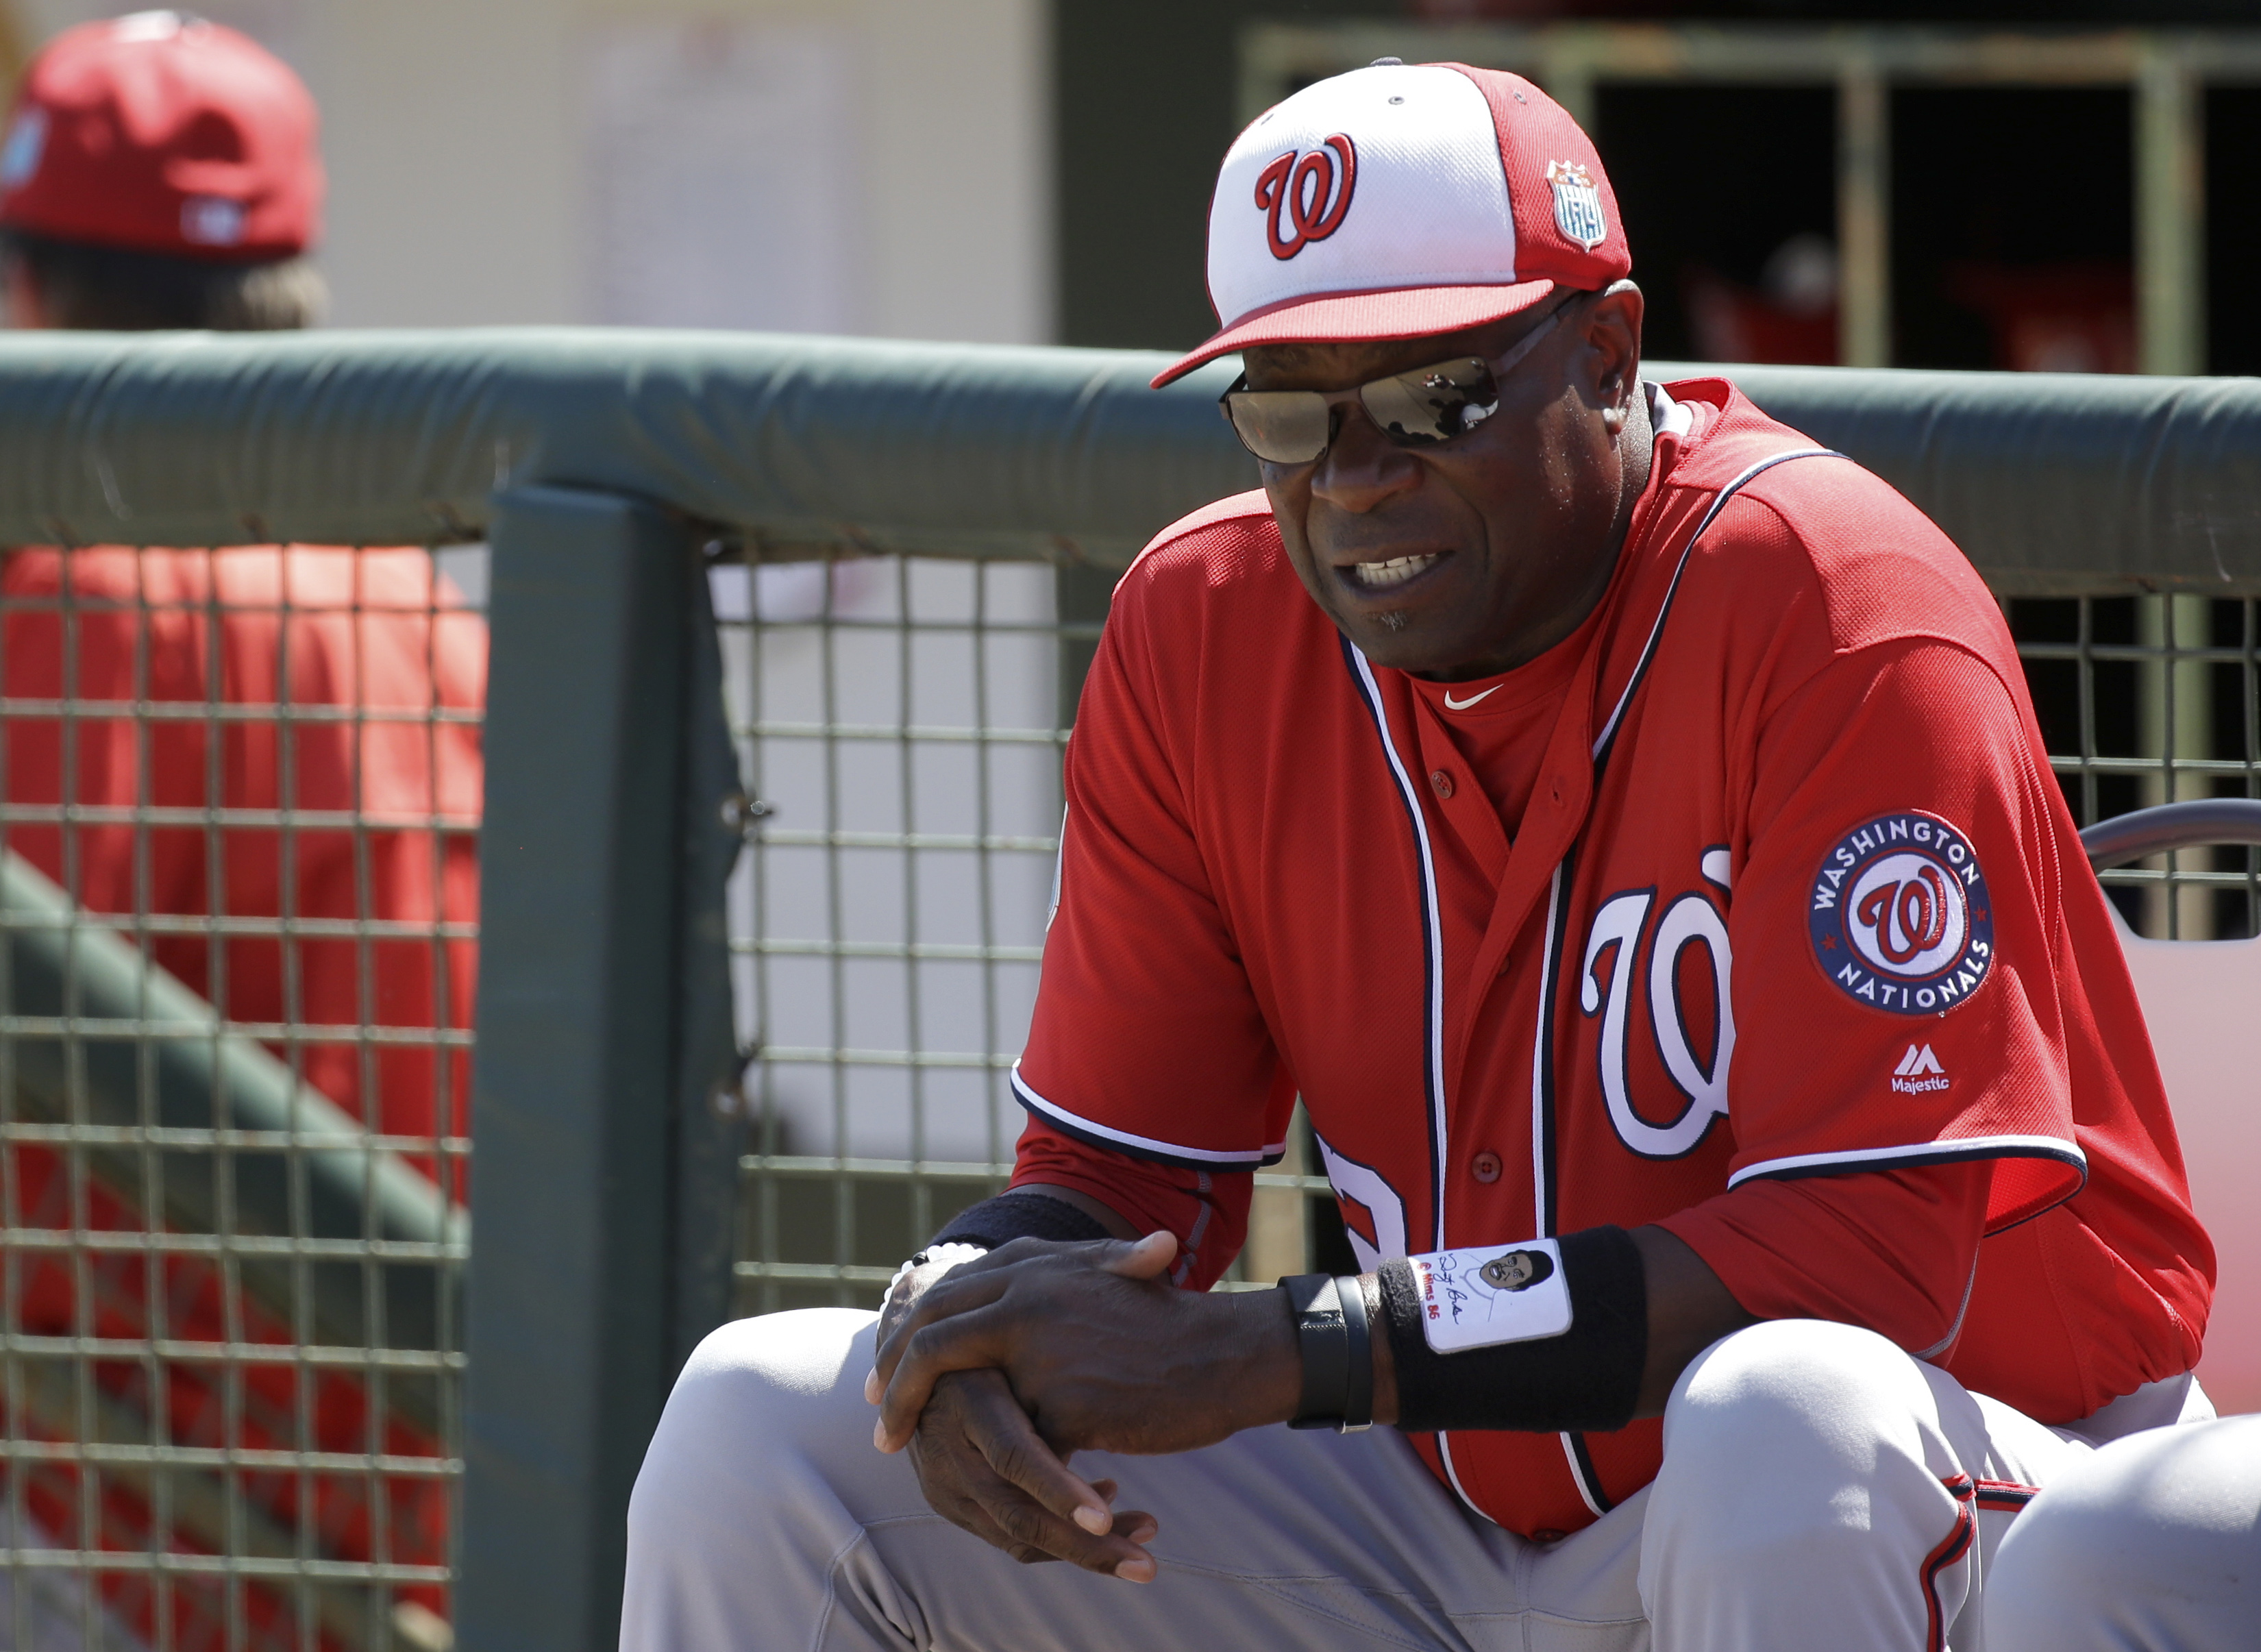 FILE - In this March 15, 2016, file photo, Washington Nationals manager Dusty Baker sits outside the dugout during a spring training baseball game against the Houston Astros, in Kissimmee, Fla. When managing the Cincinnati Reds, Dusty Baker always had a d